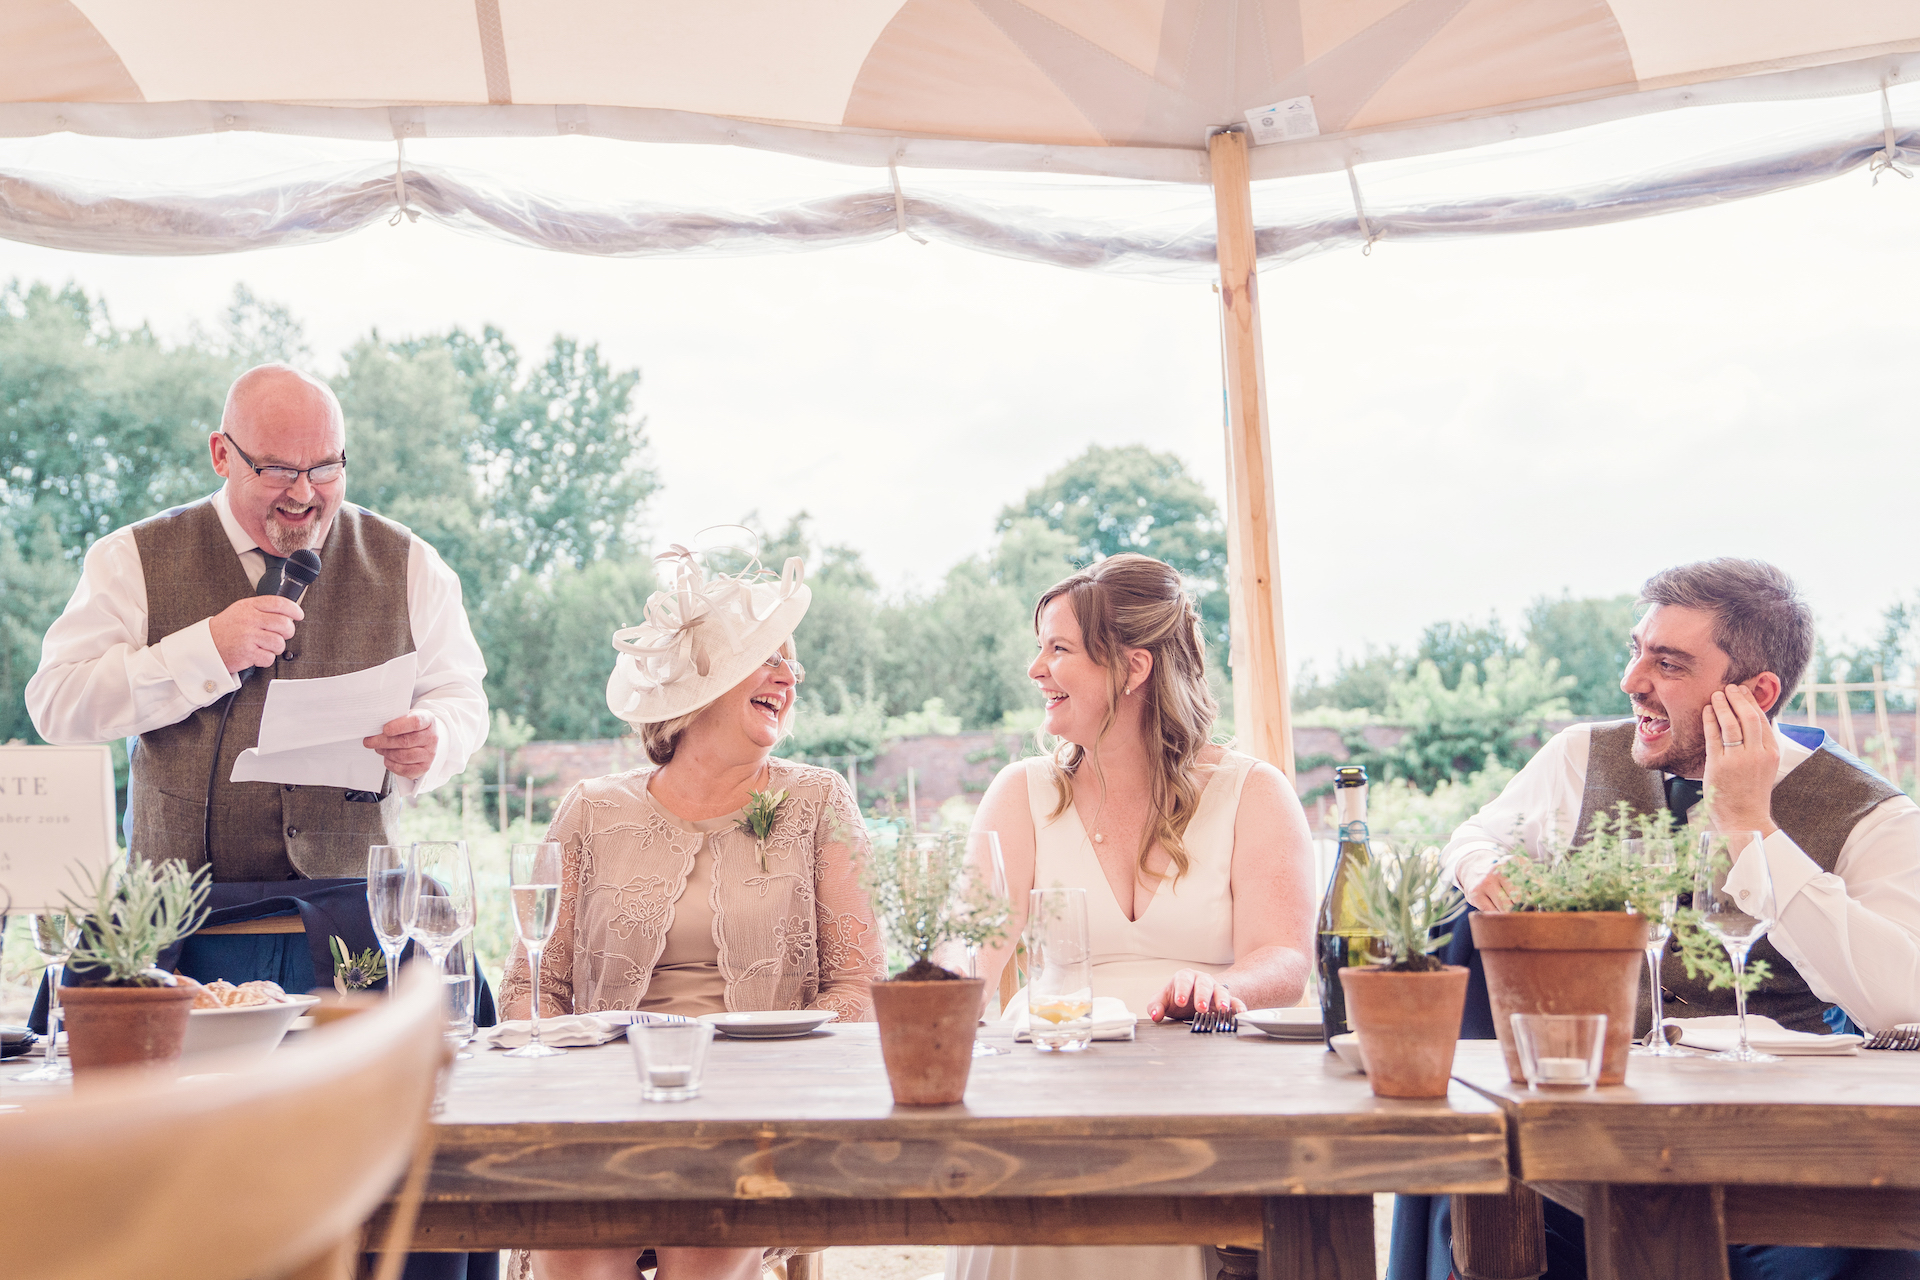 PapaKåta couple Louise & Alex's Sperry Wedding at Elford Hall Garden, Staffordshire captured by Jessica Raphael Photography- Top table wedding party